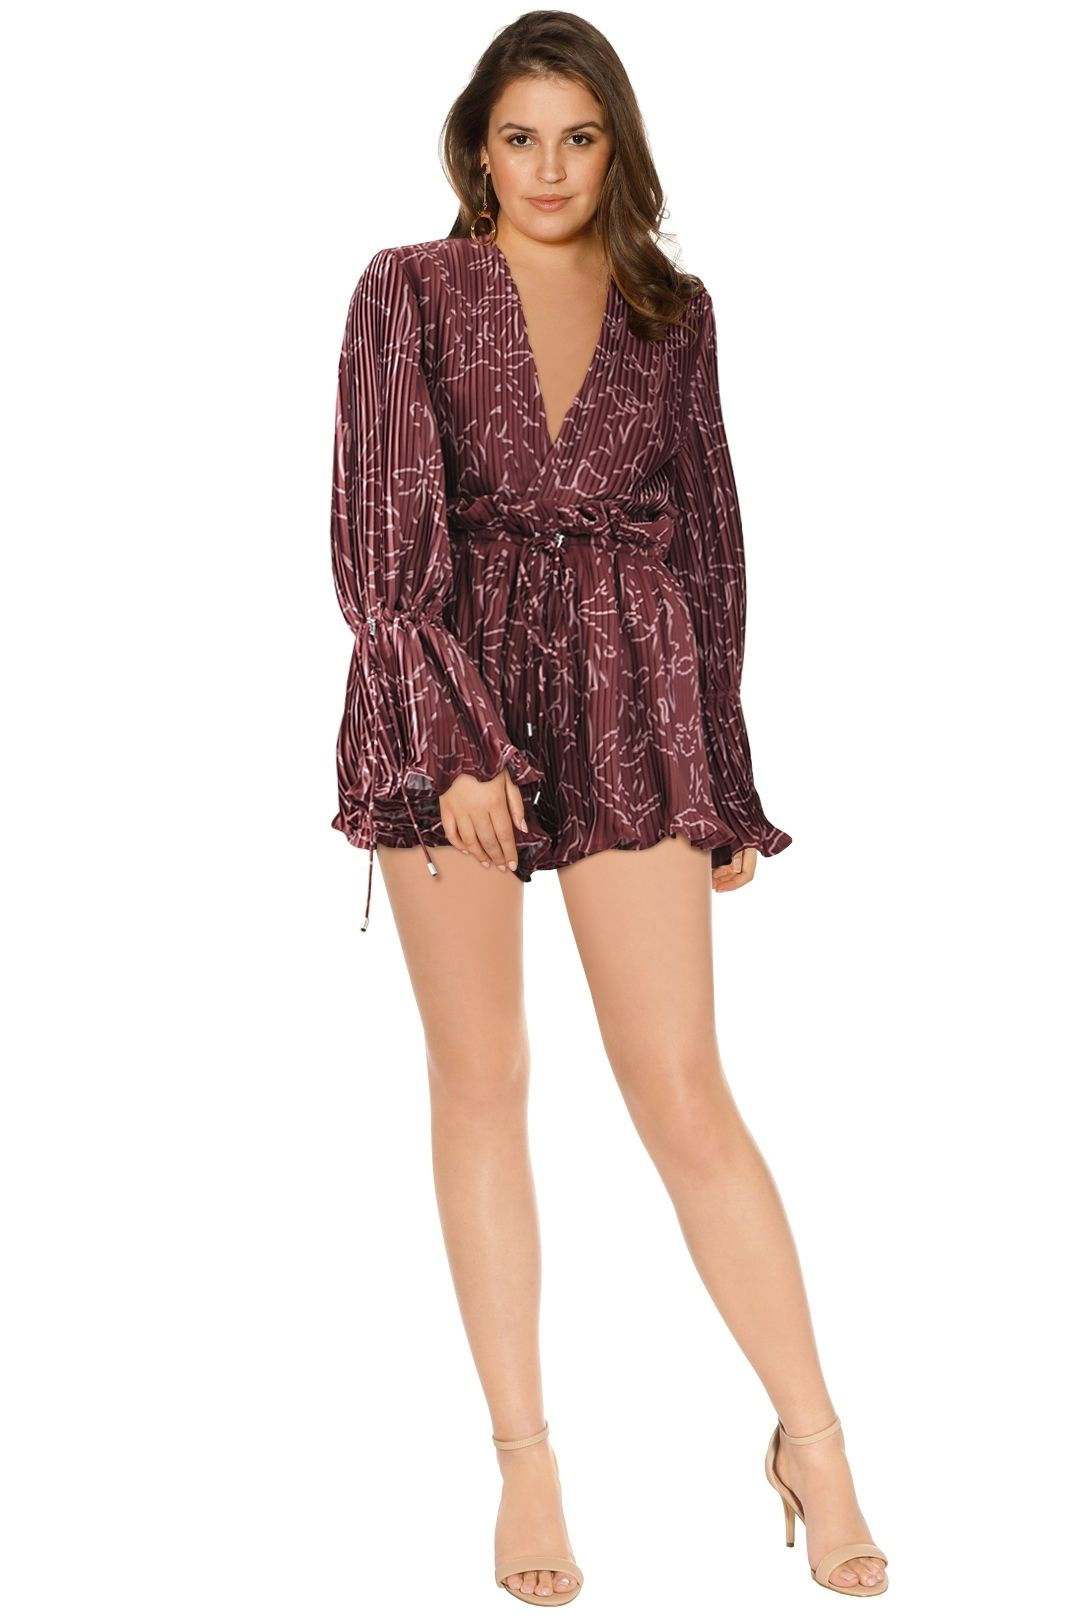 Cameo - Dream Chaser Playsuit - Rose - Front